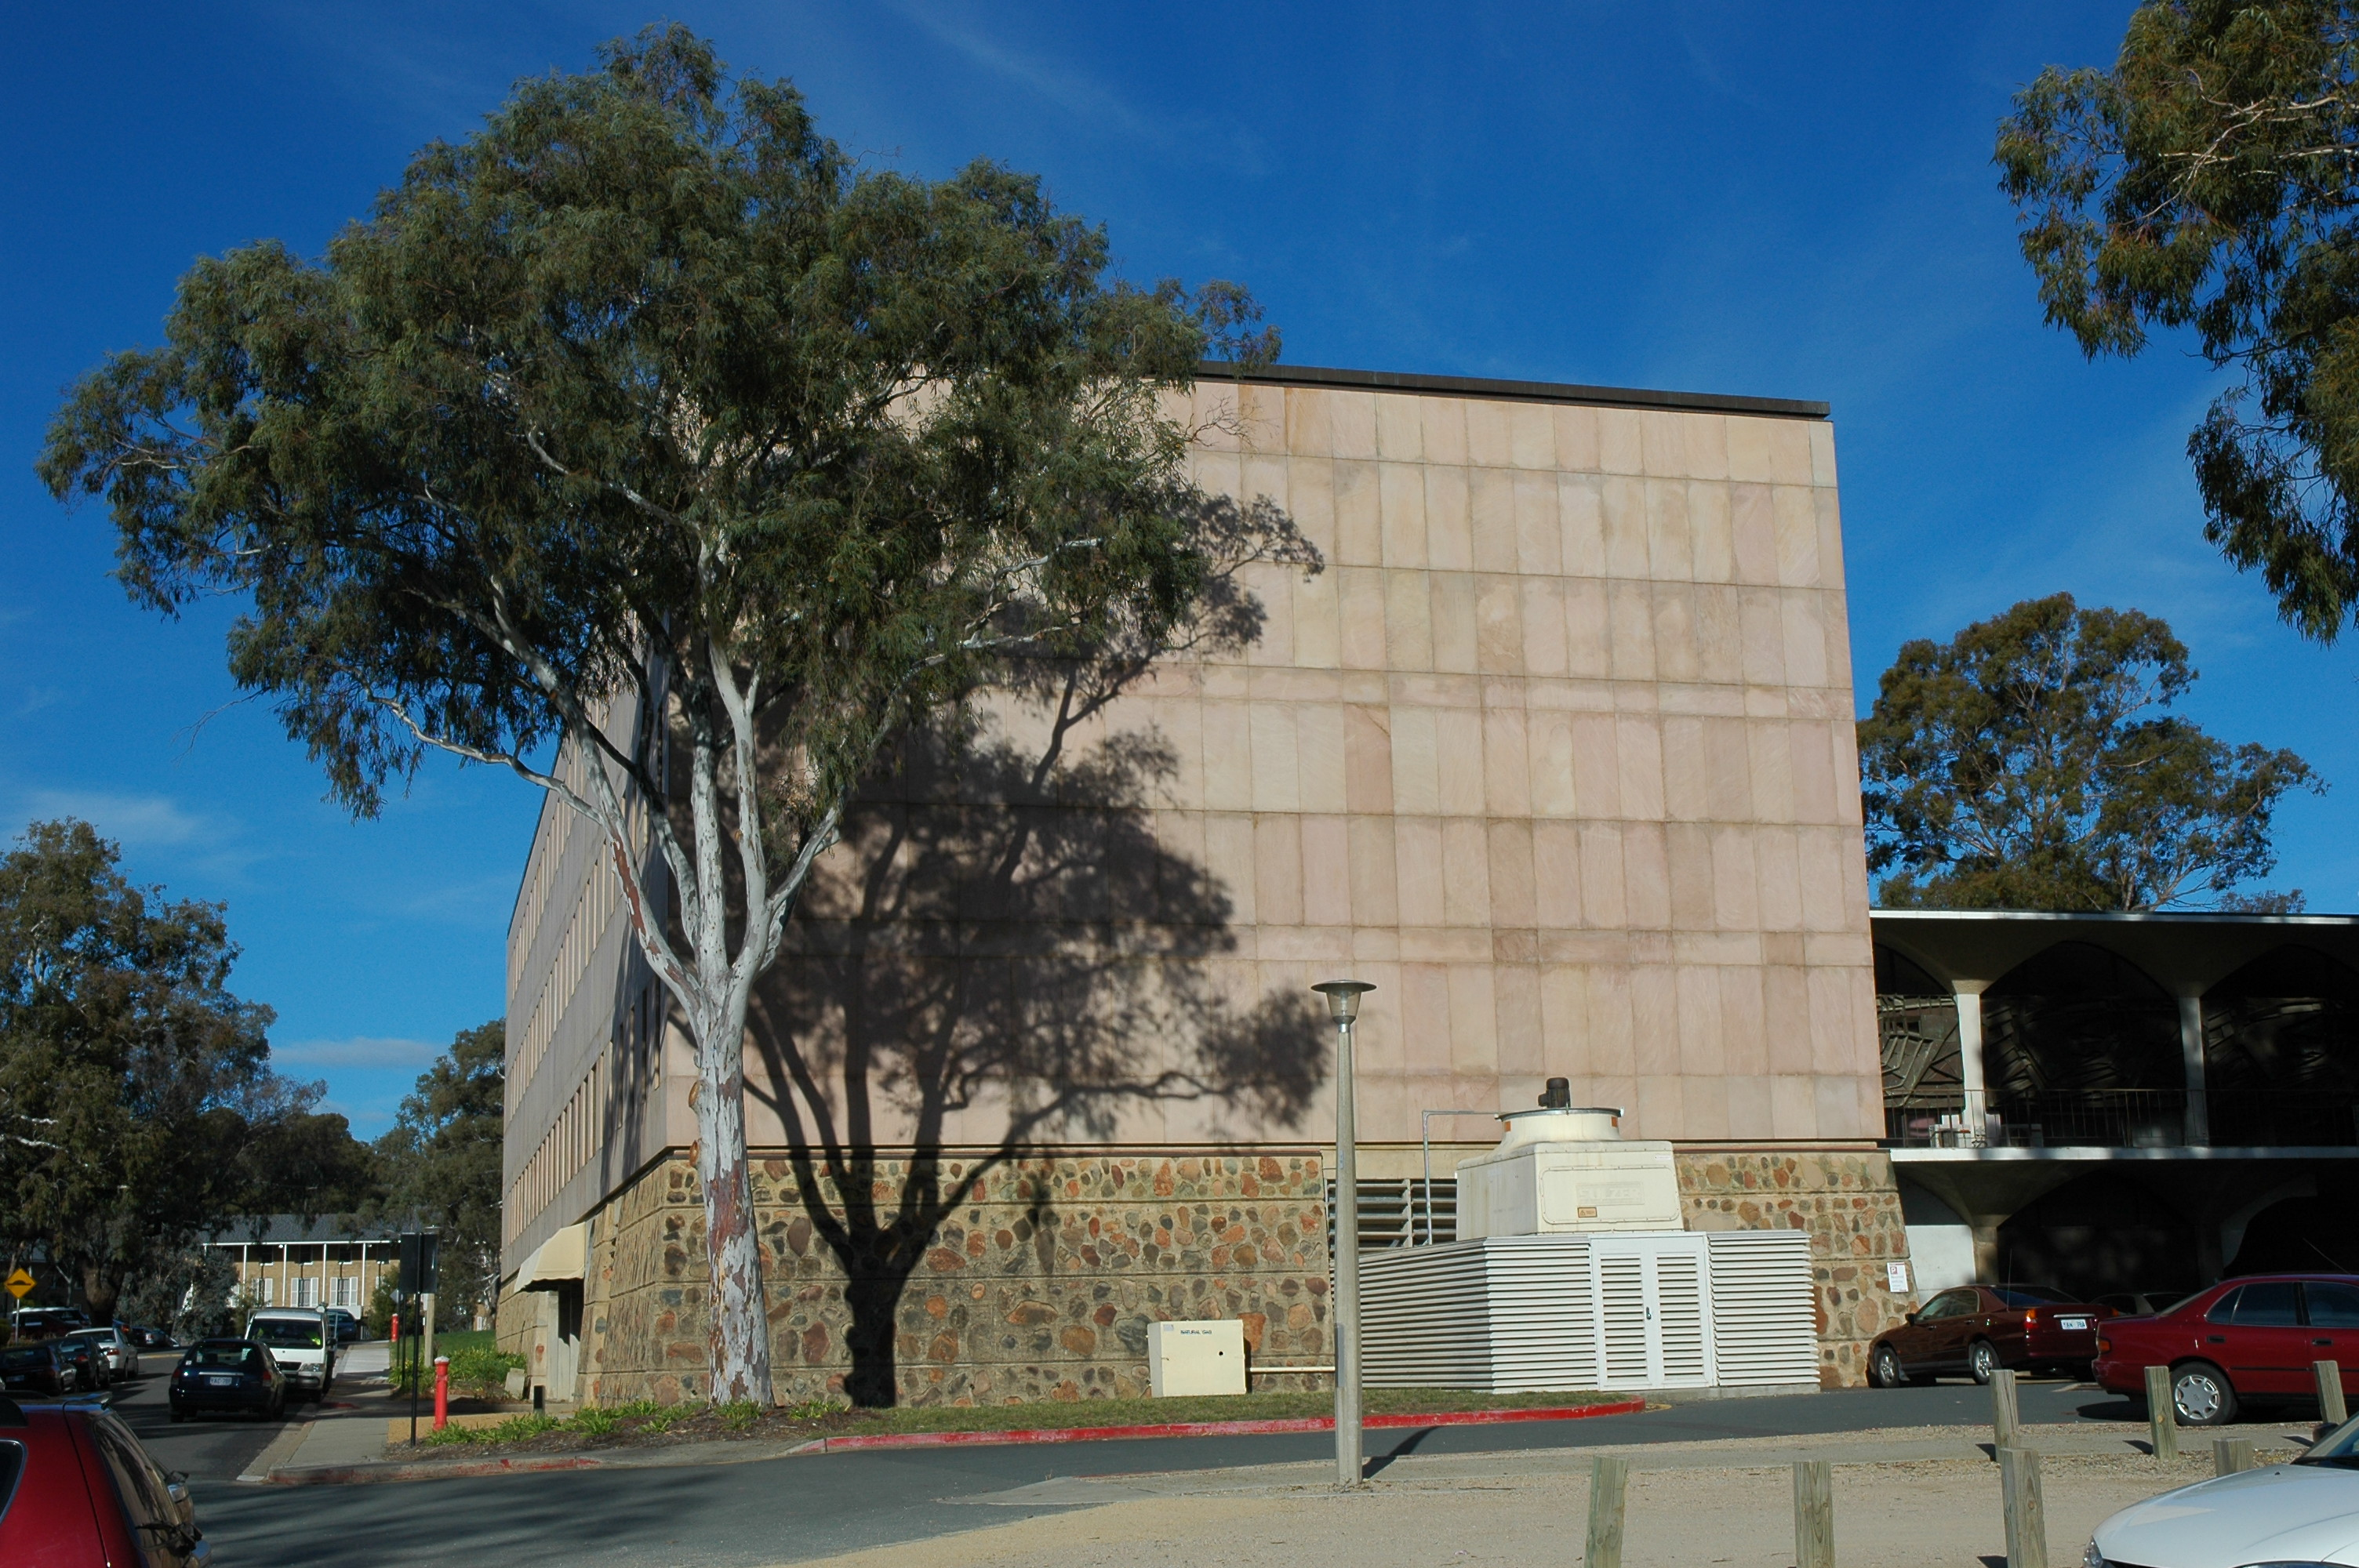 File R G Menzies Building Anu Canberra With Tree 124083584 Jpg Wikimedia Commons